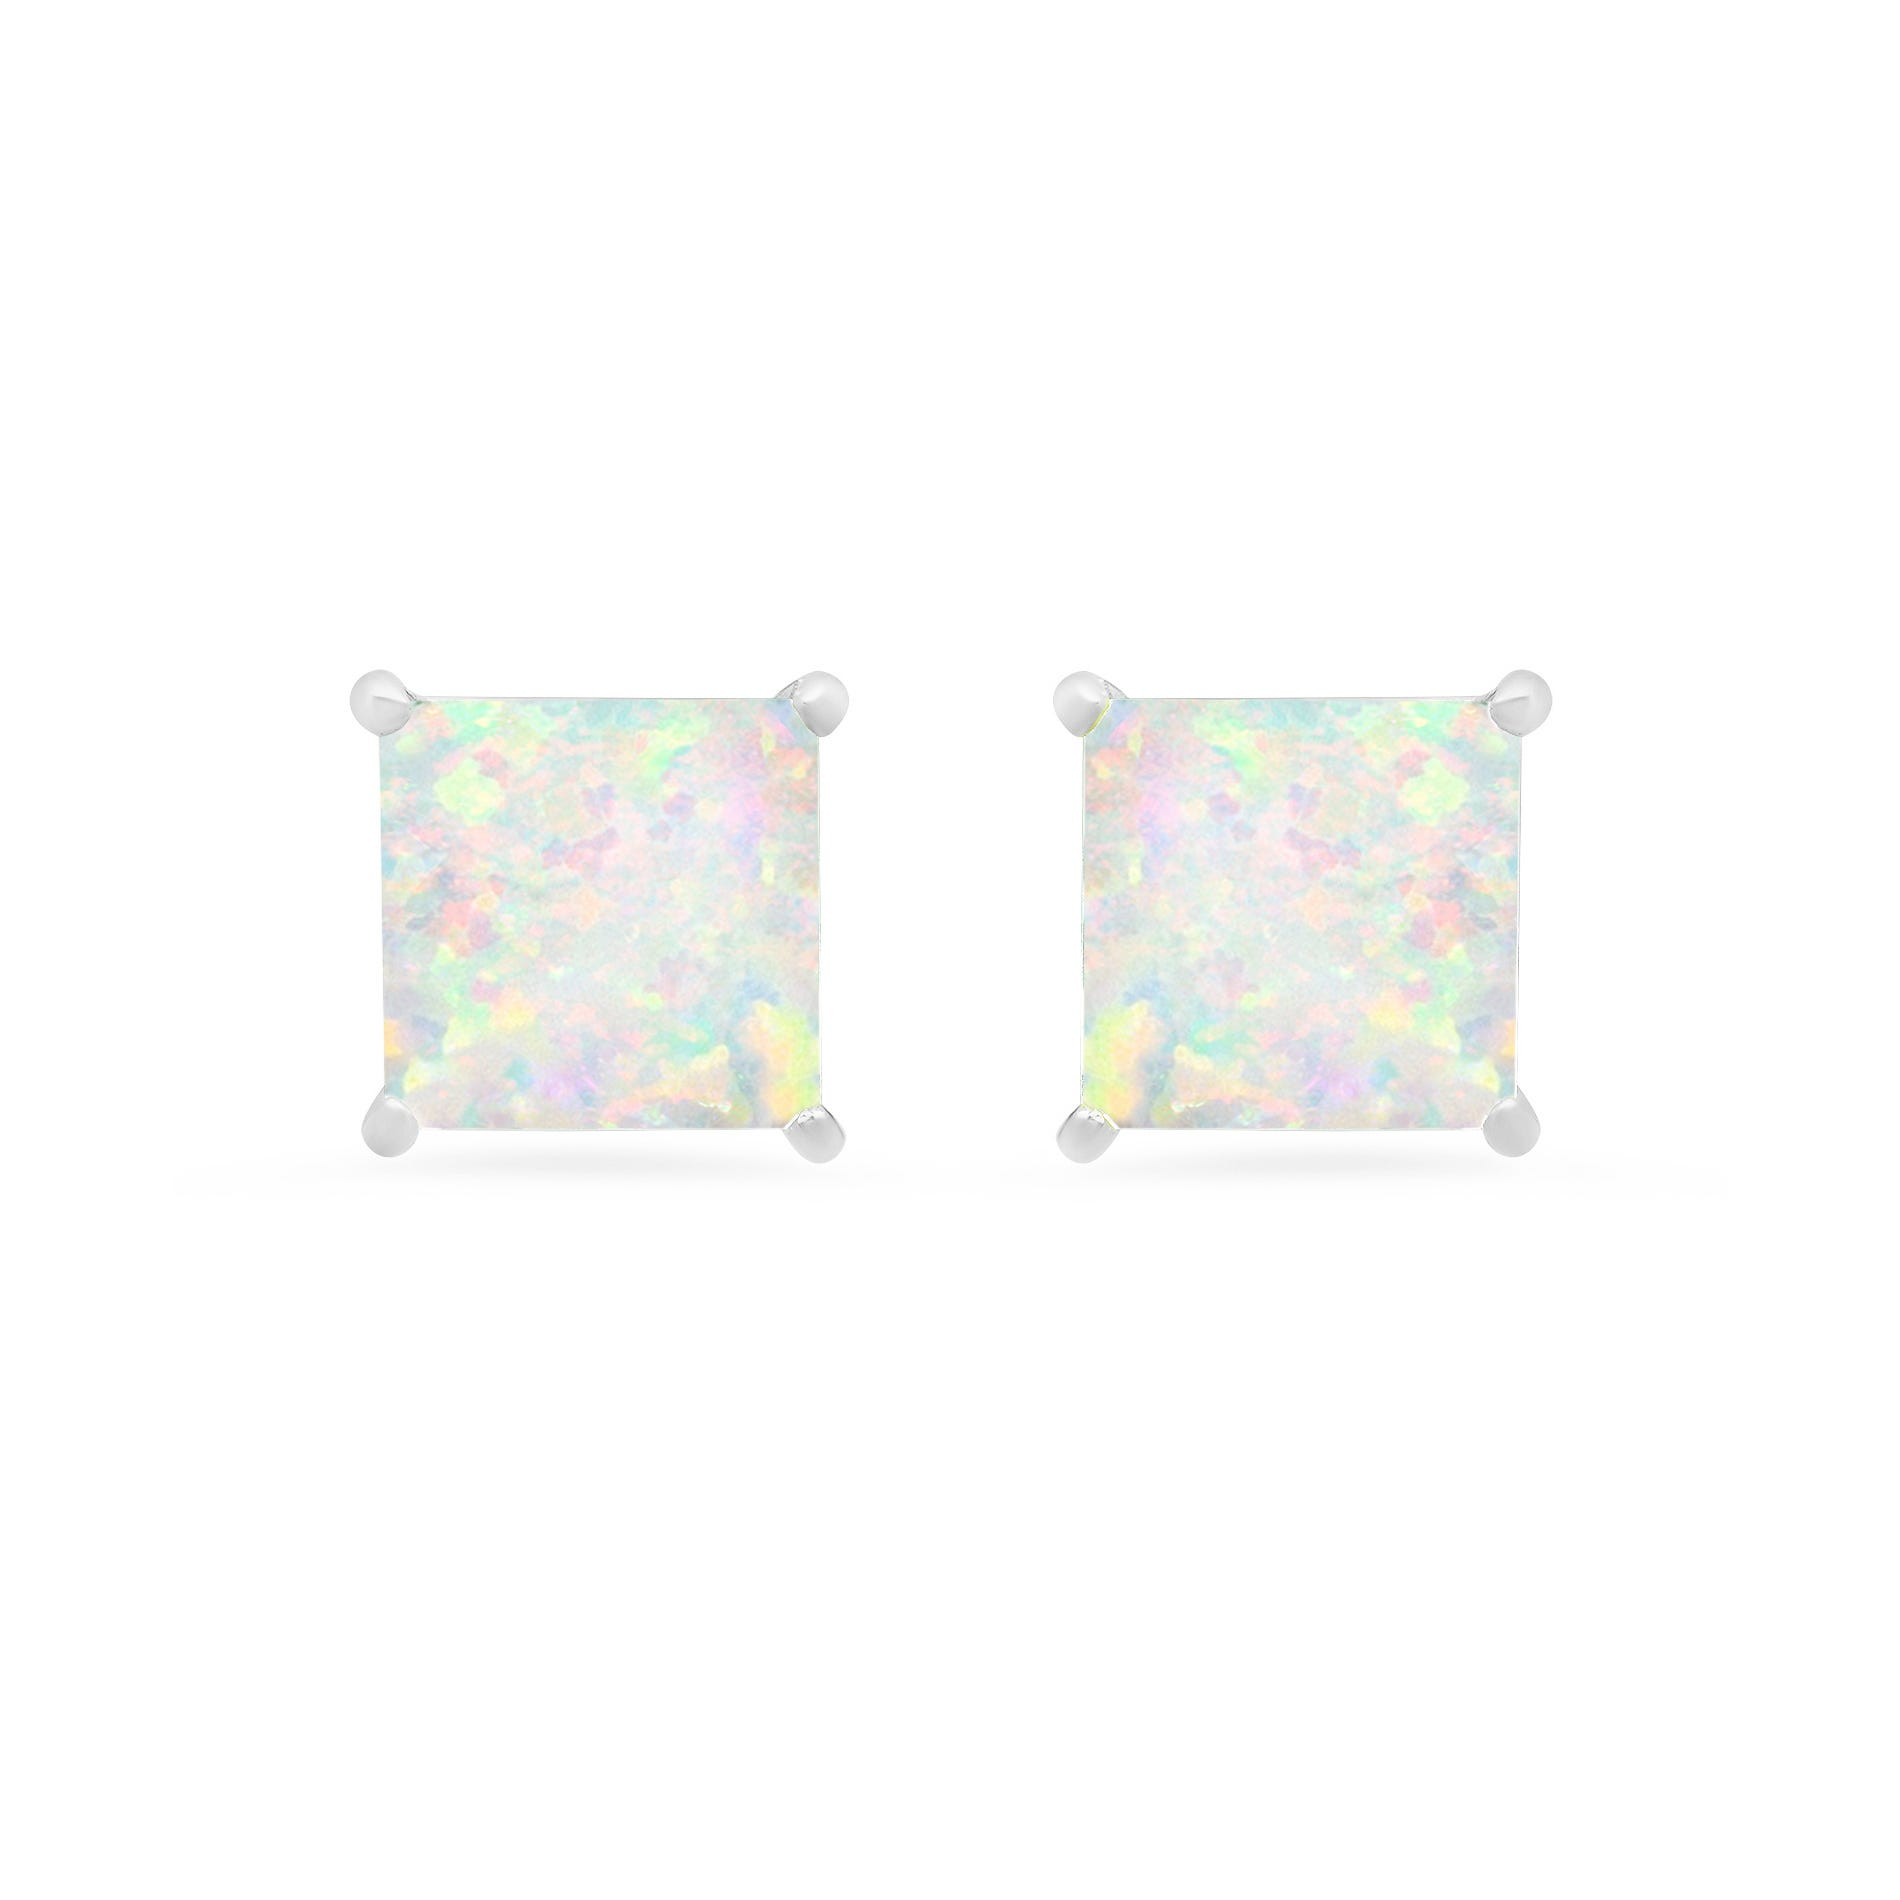 Princess-Cut Created Opal Solitaire Stud Earrings in 14k White Gold